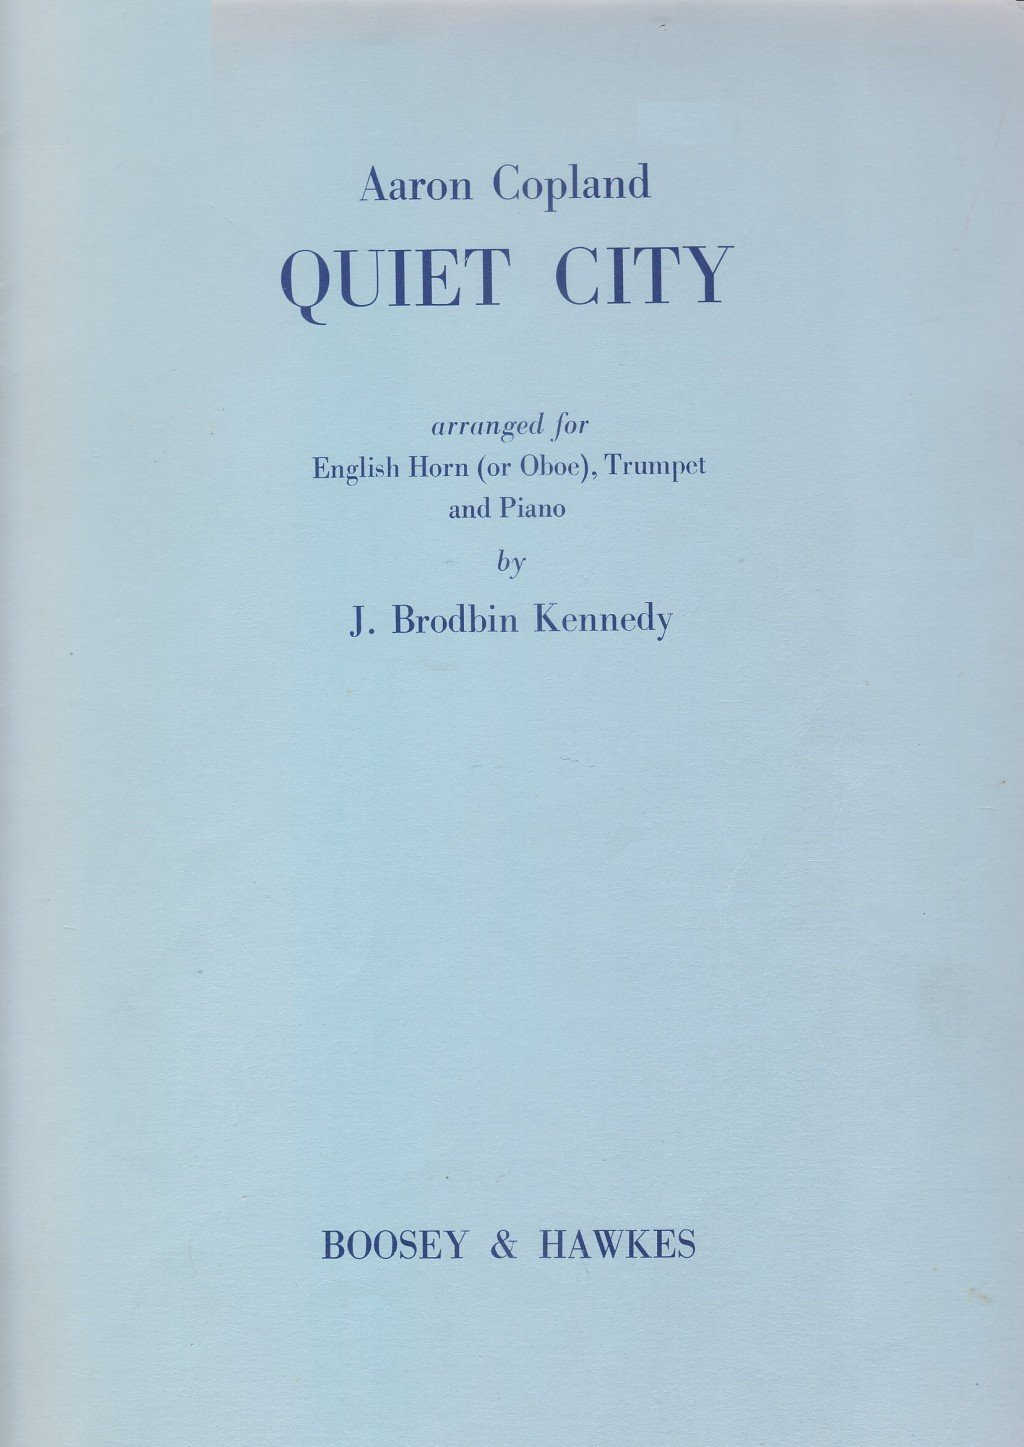 Copland, Aaron (arr. Kennedy): Quiet City for Trumpet, English Horn, & Piano